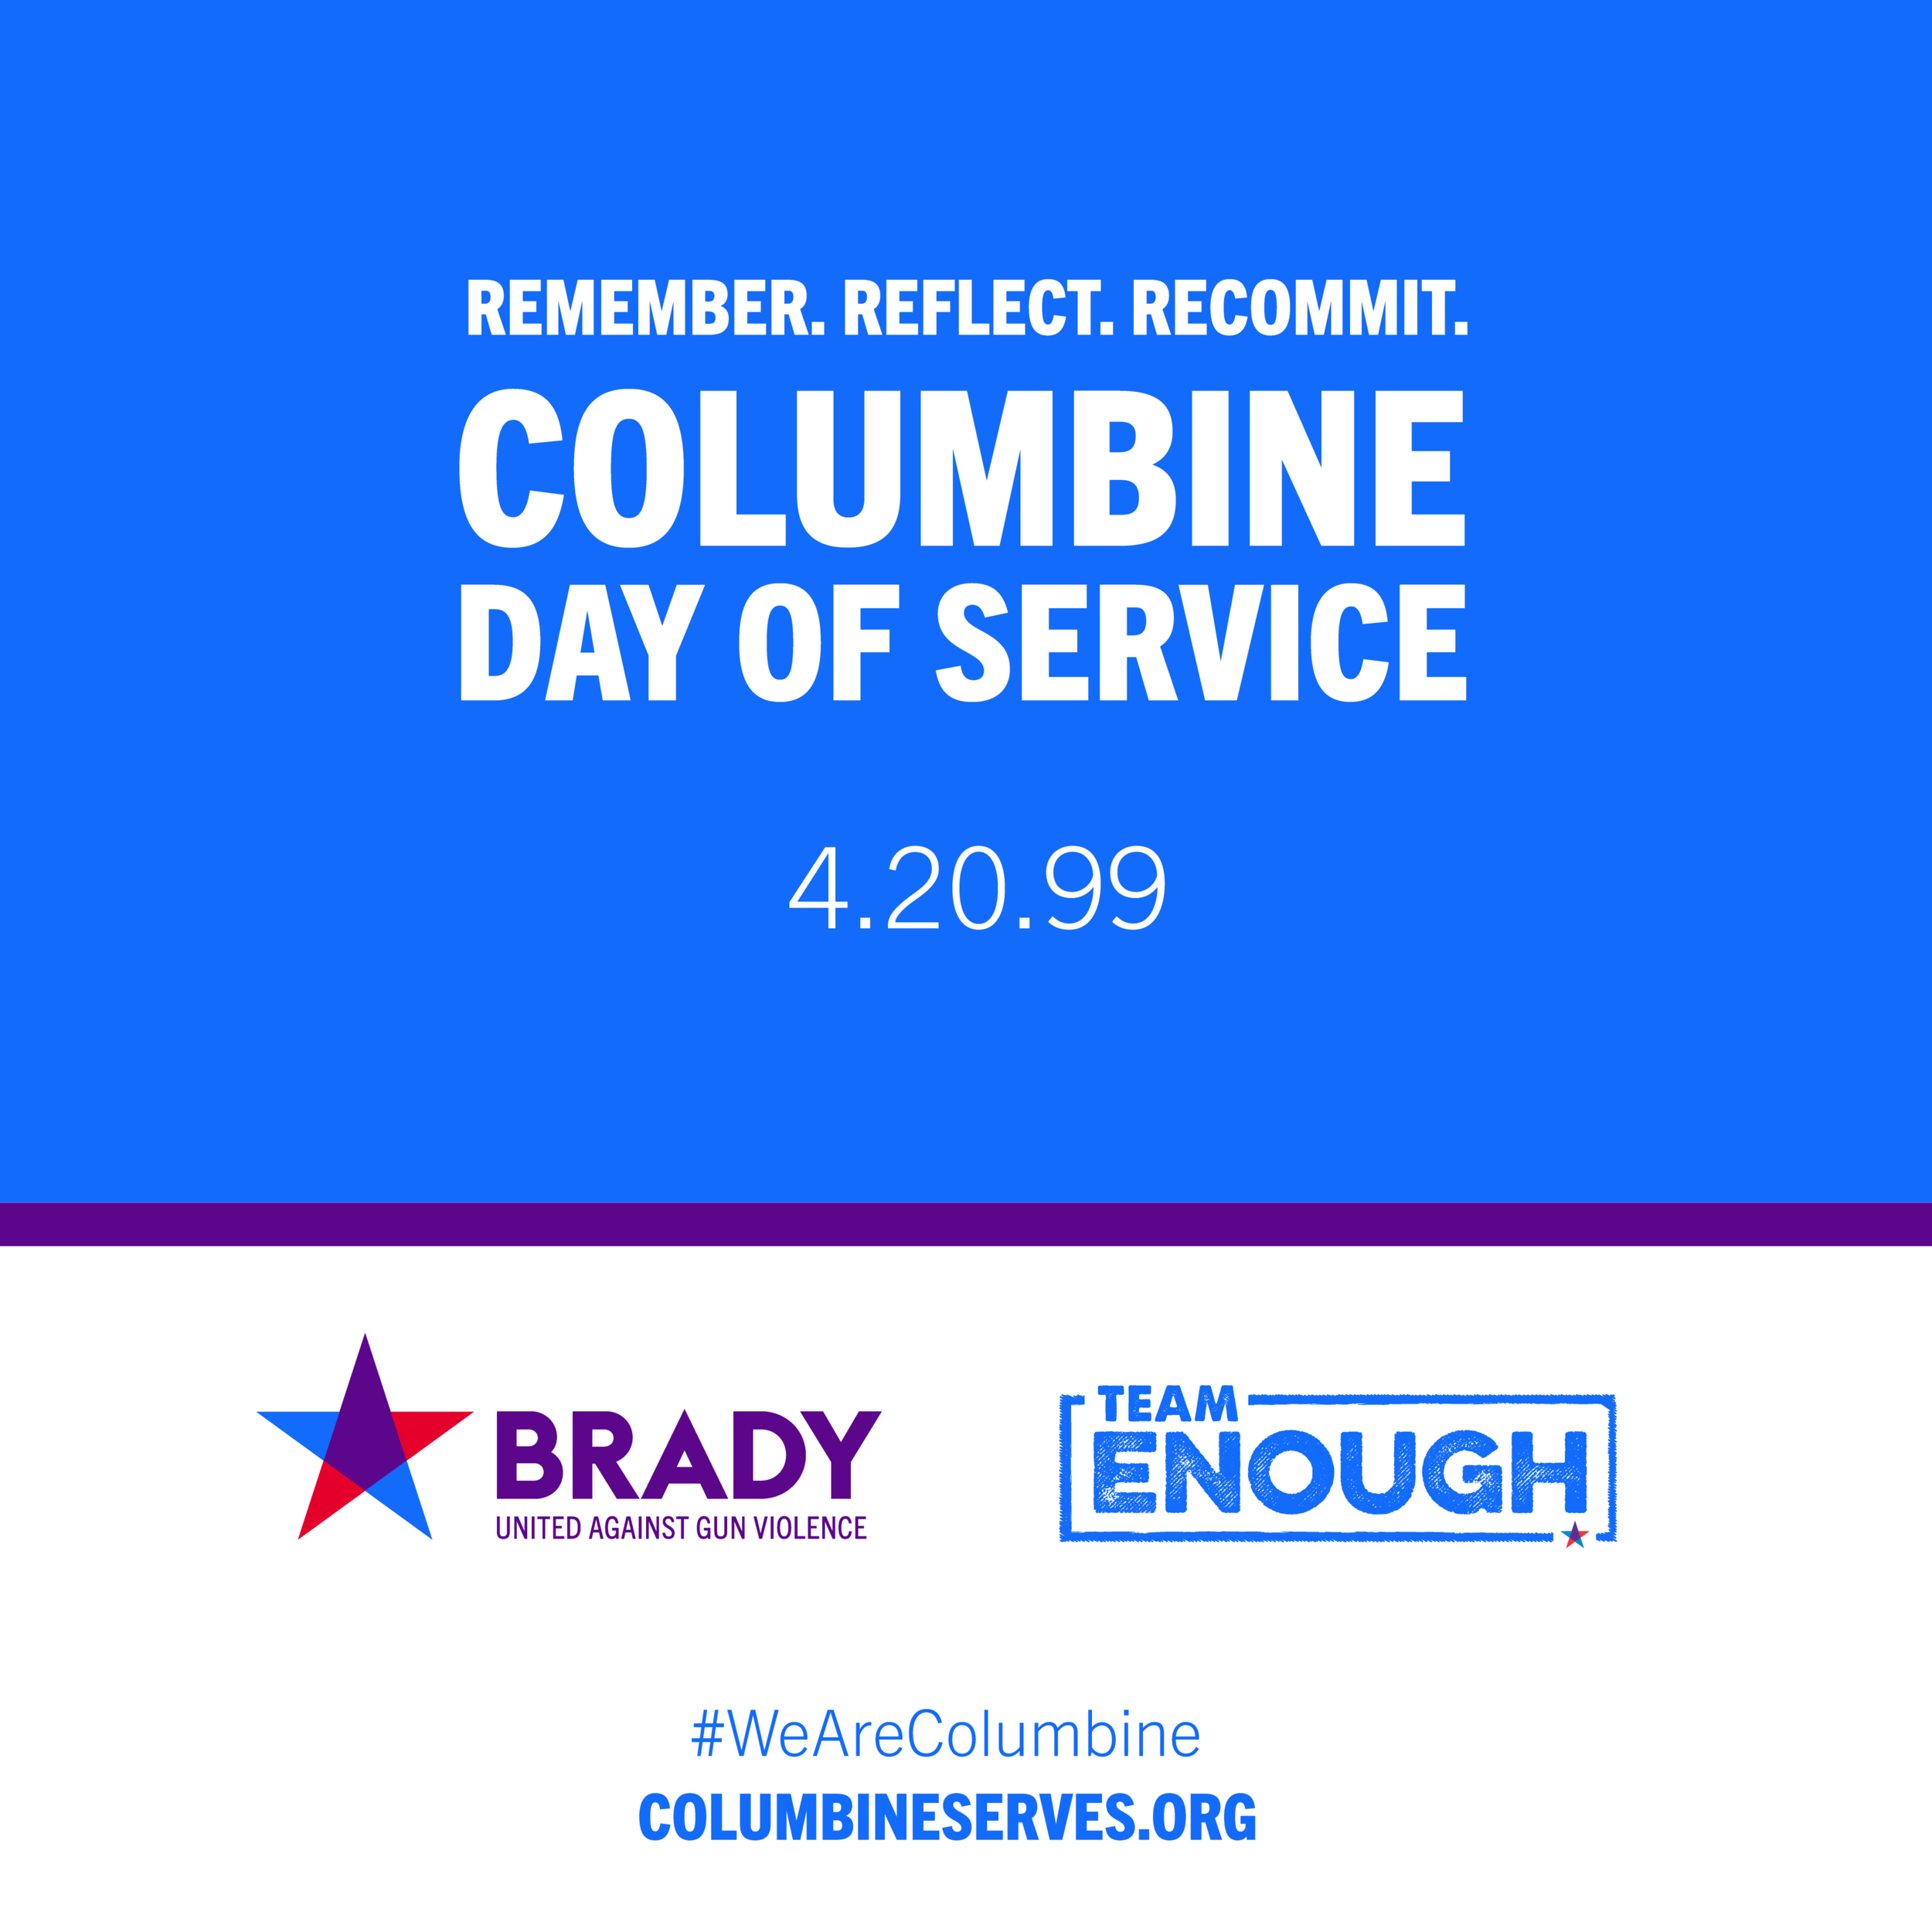 wearecolumbine-01 (1).png